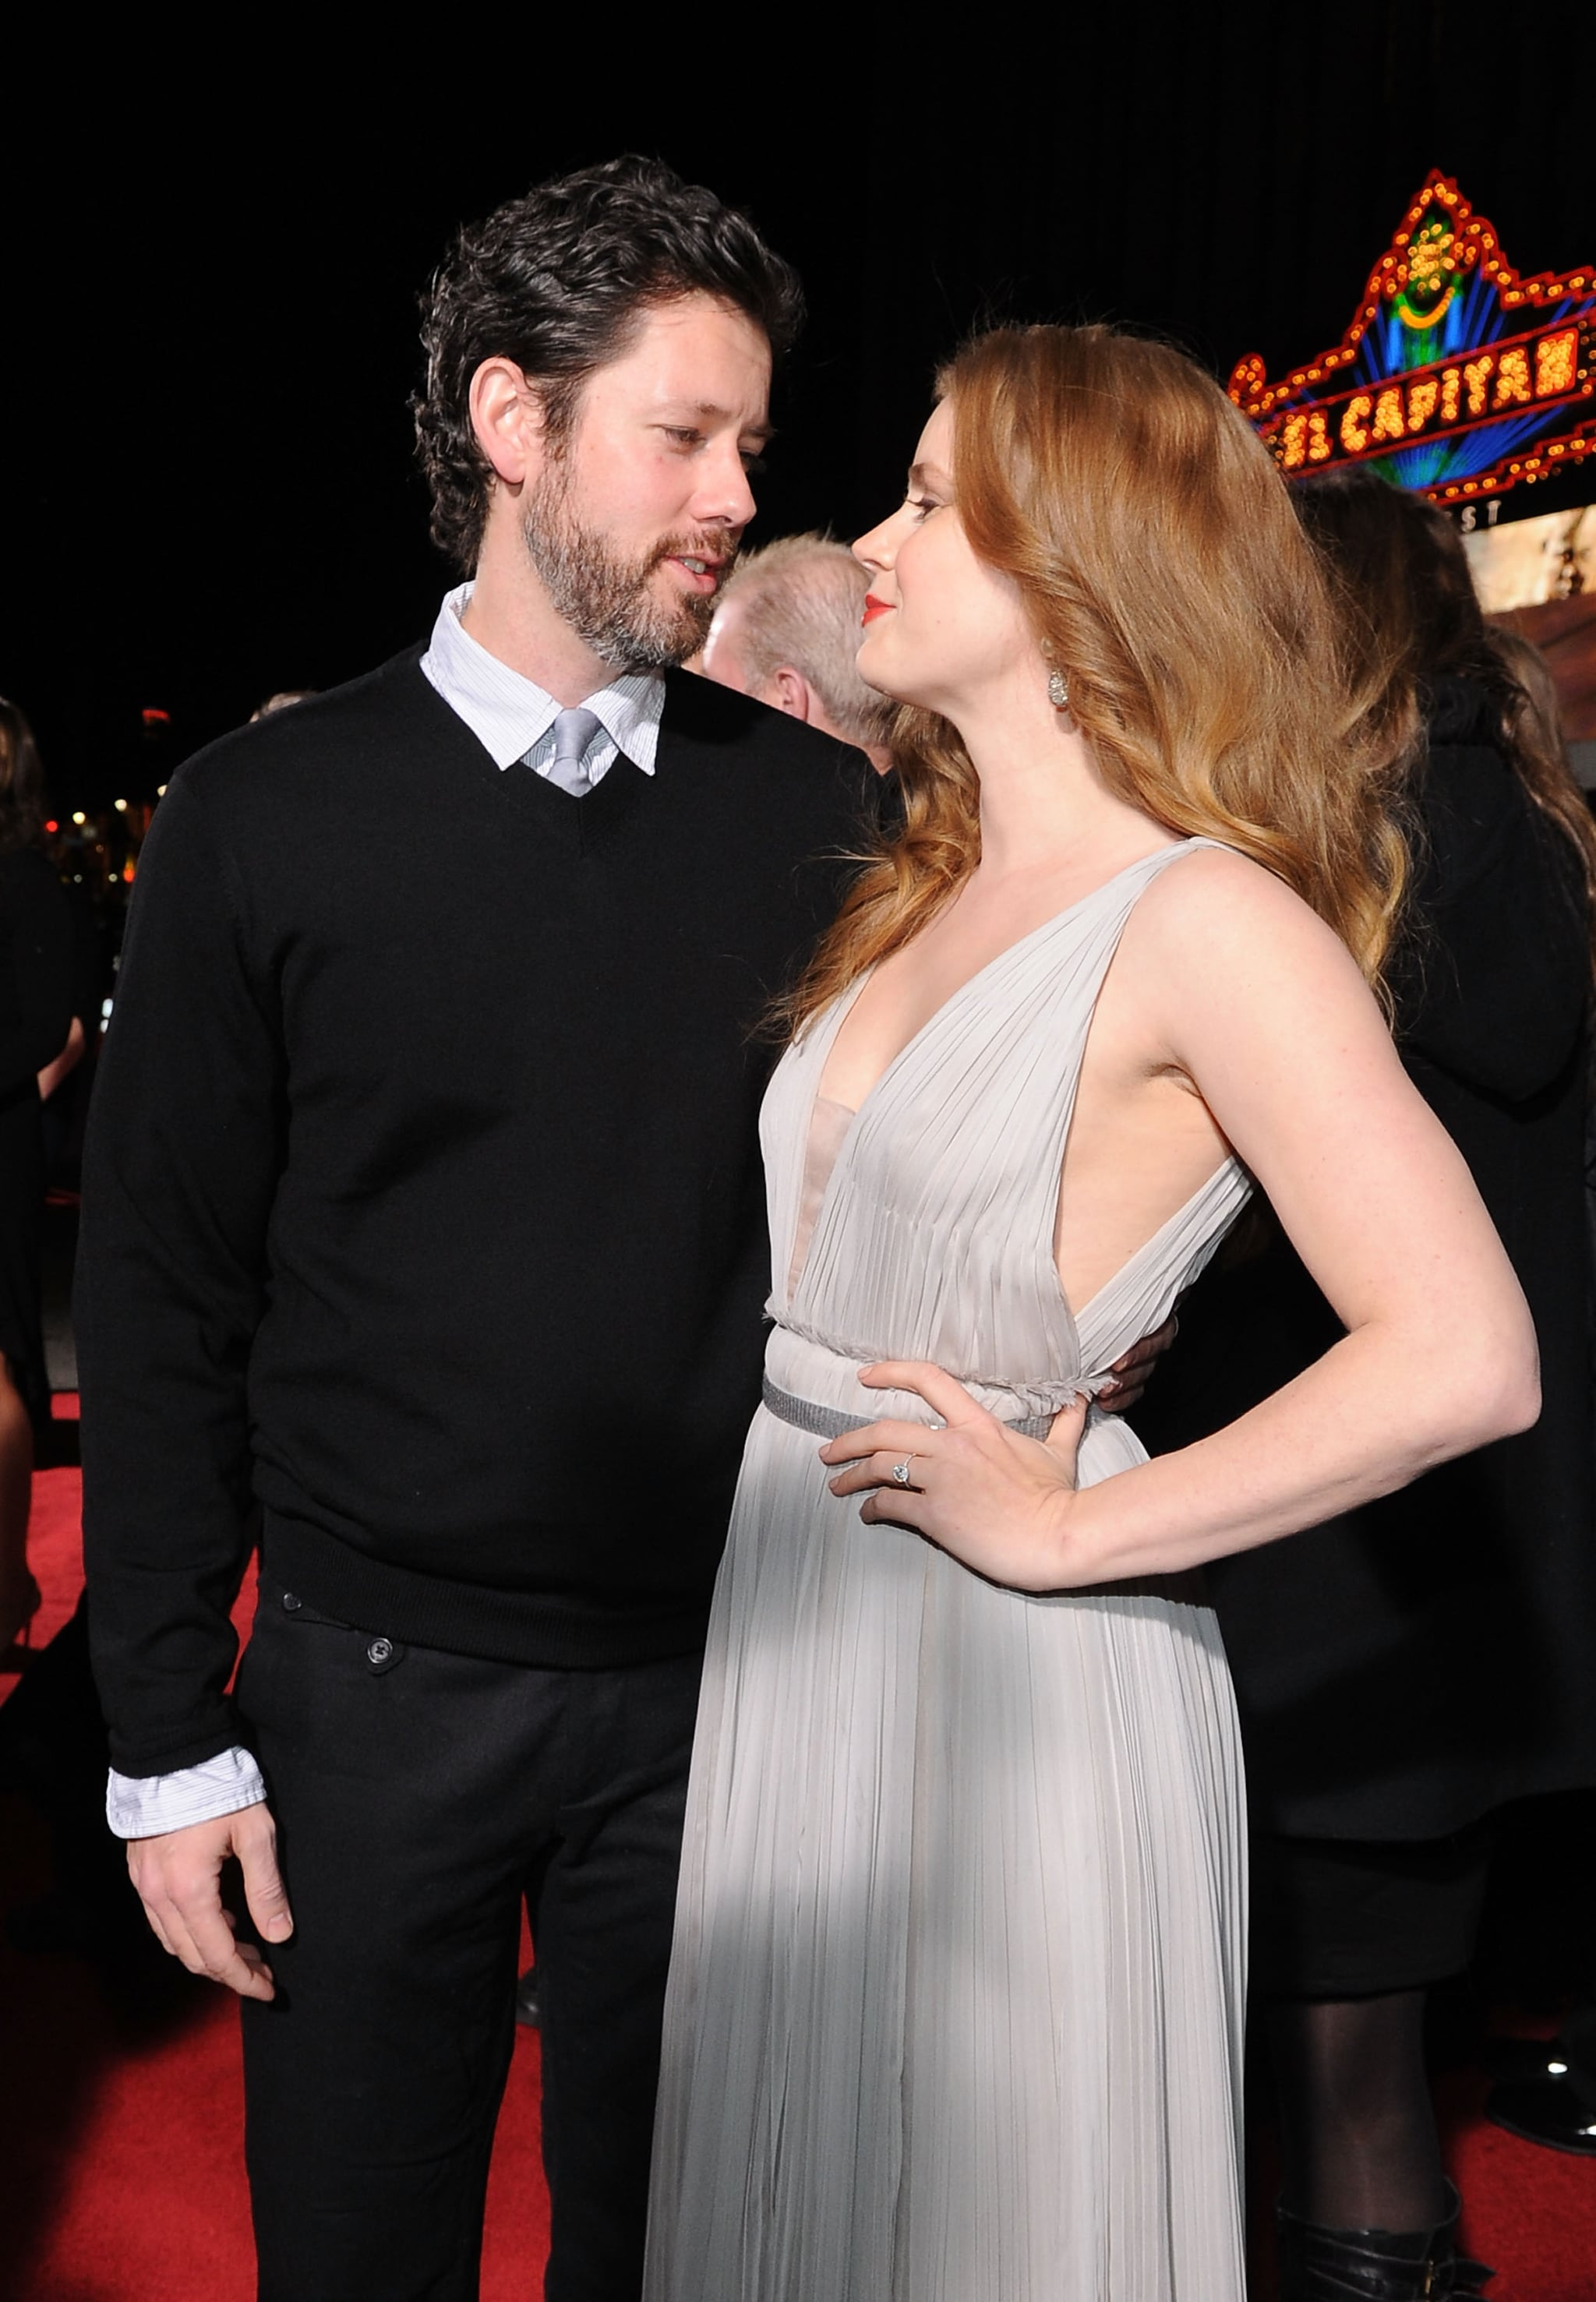 Adams Auto Parts >> Pictures of Christian Bale, Mark Wahlberg, Amy Adams, and Melissa Leo at the LA Premiere of The ...